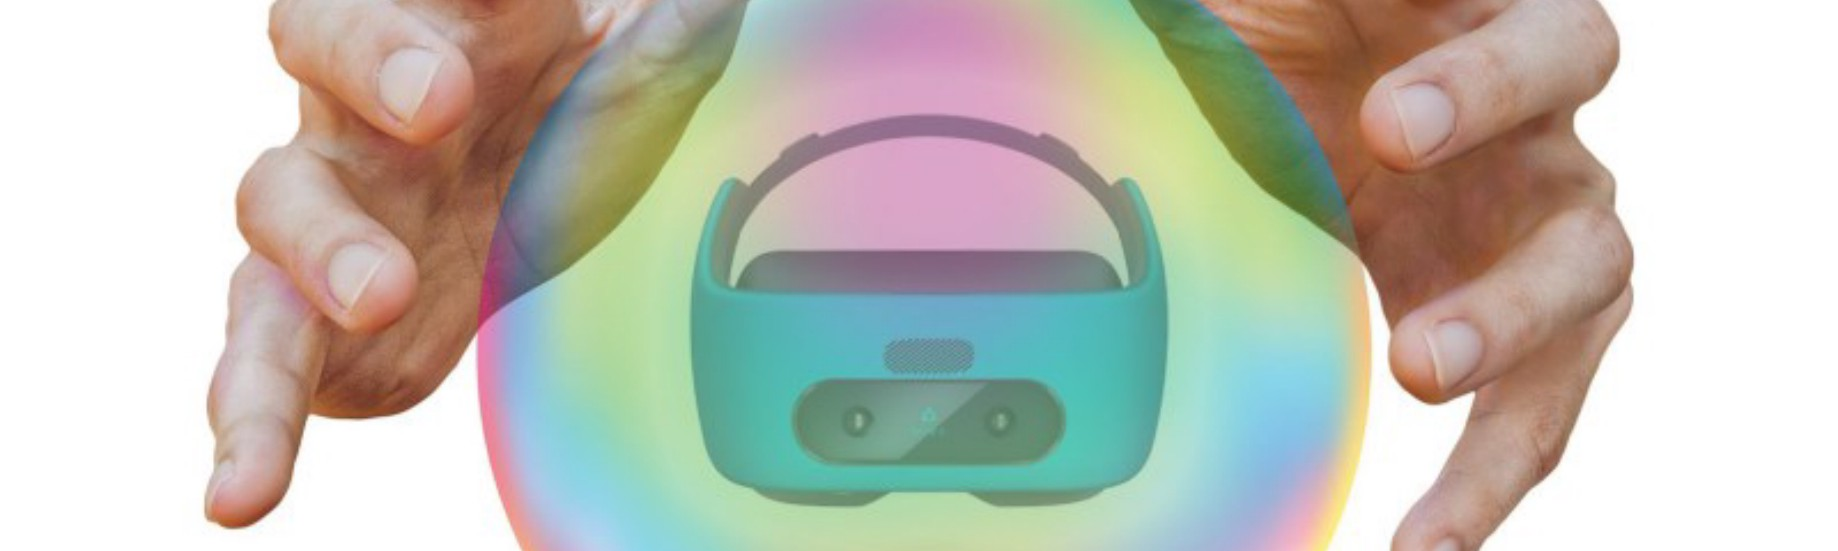 Asw-156 Porn how will be virtual reality in 2018 - hackernoon - medium